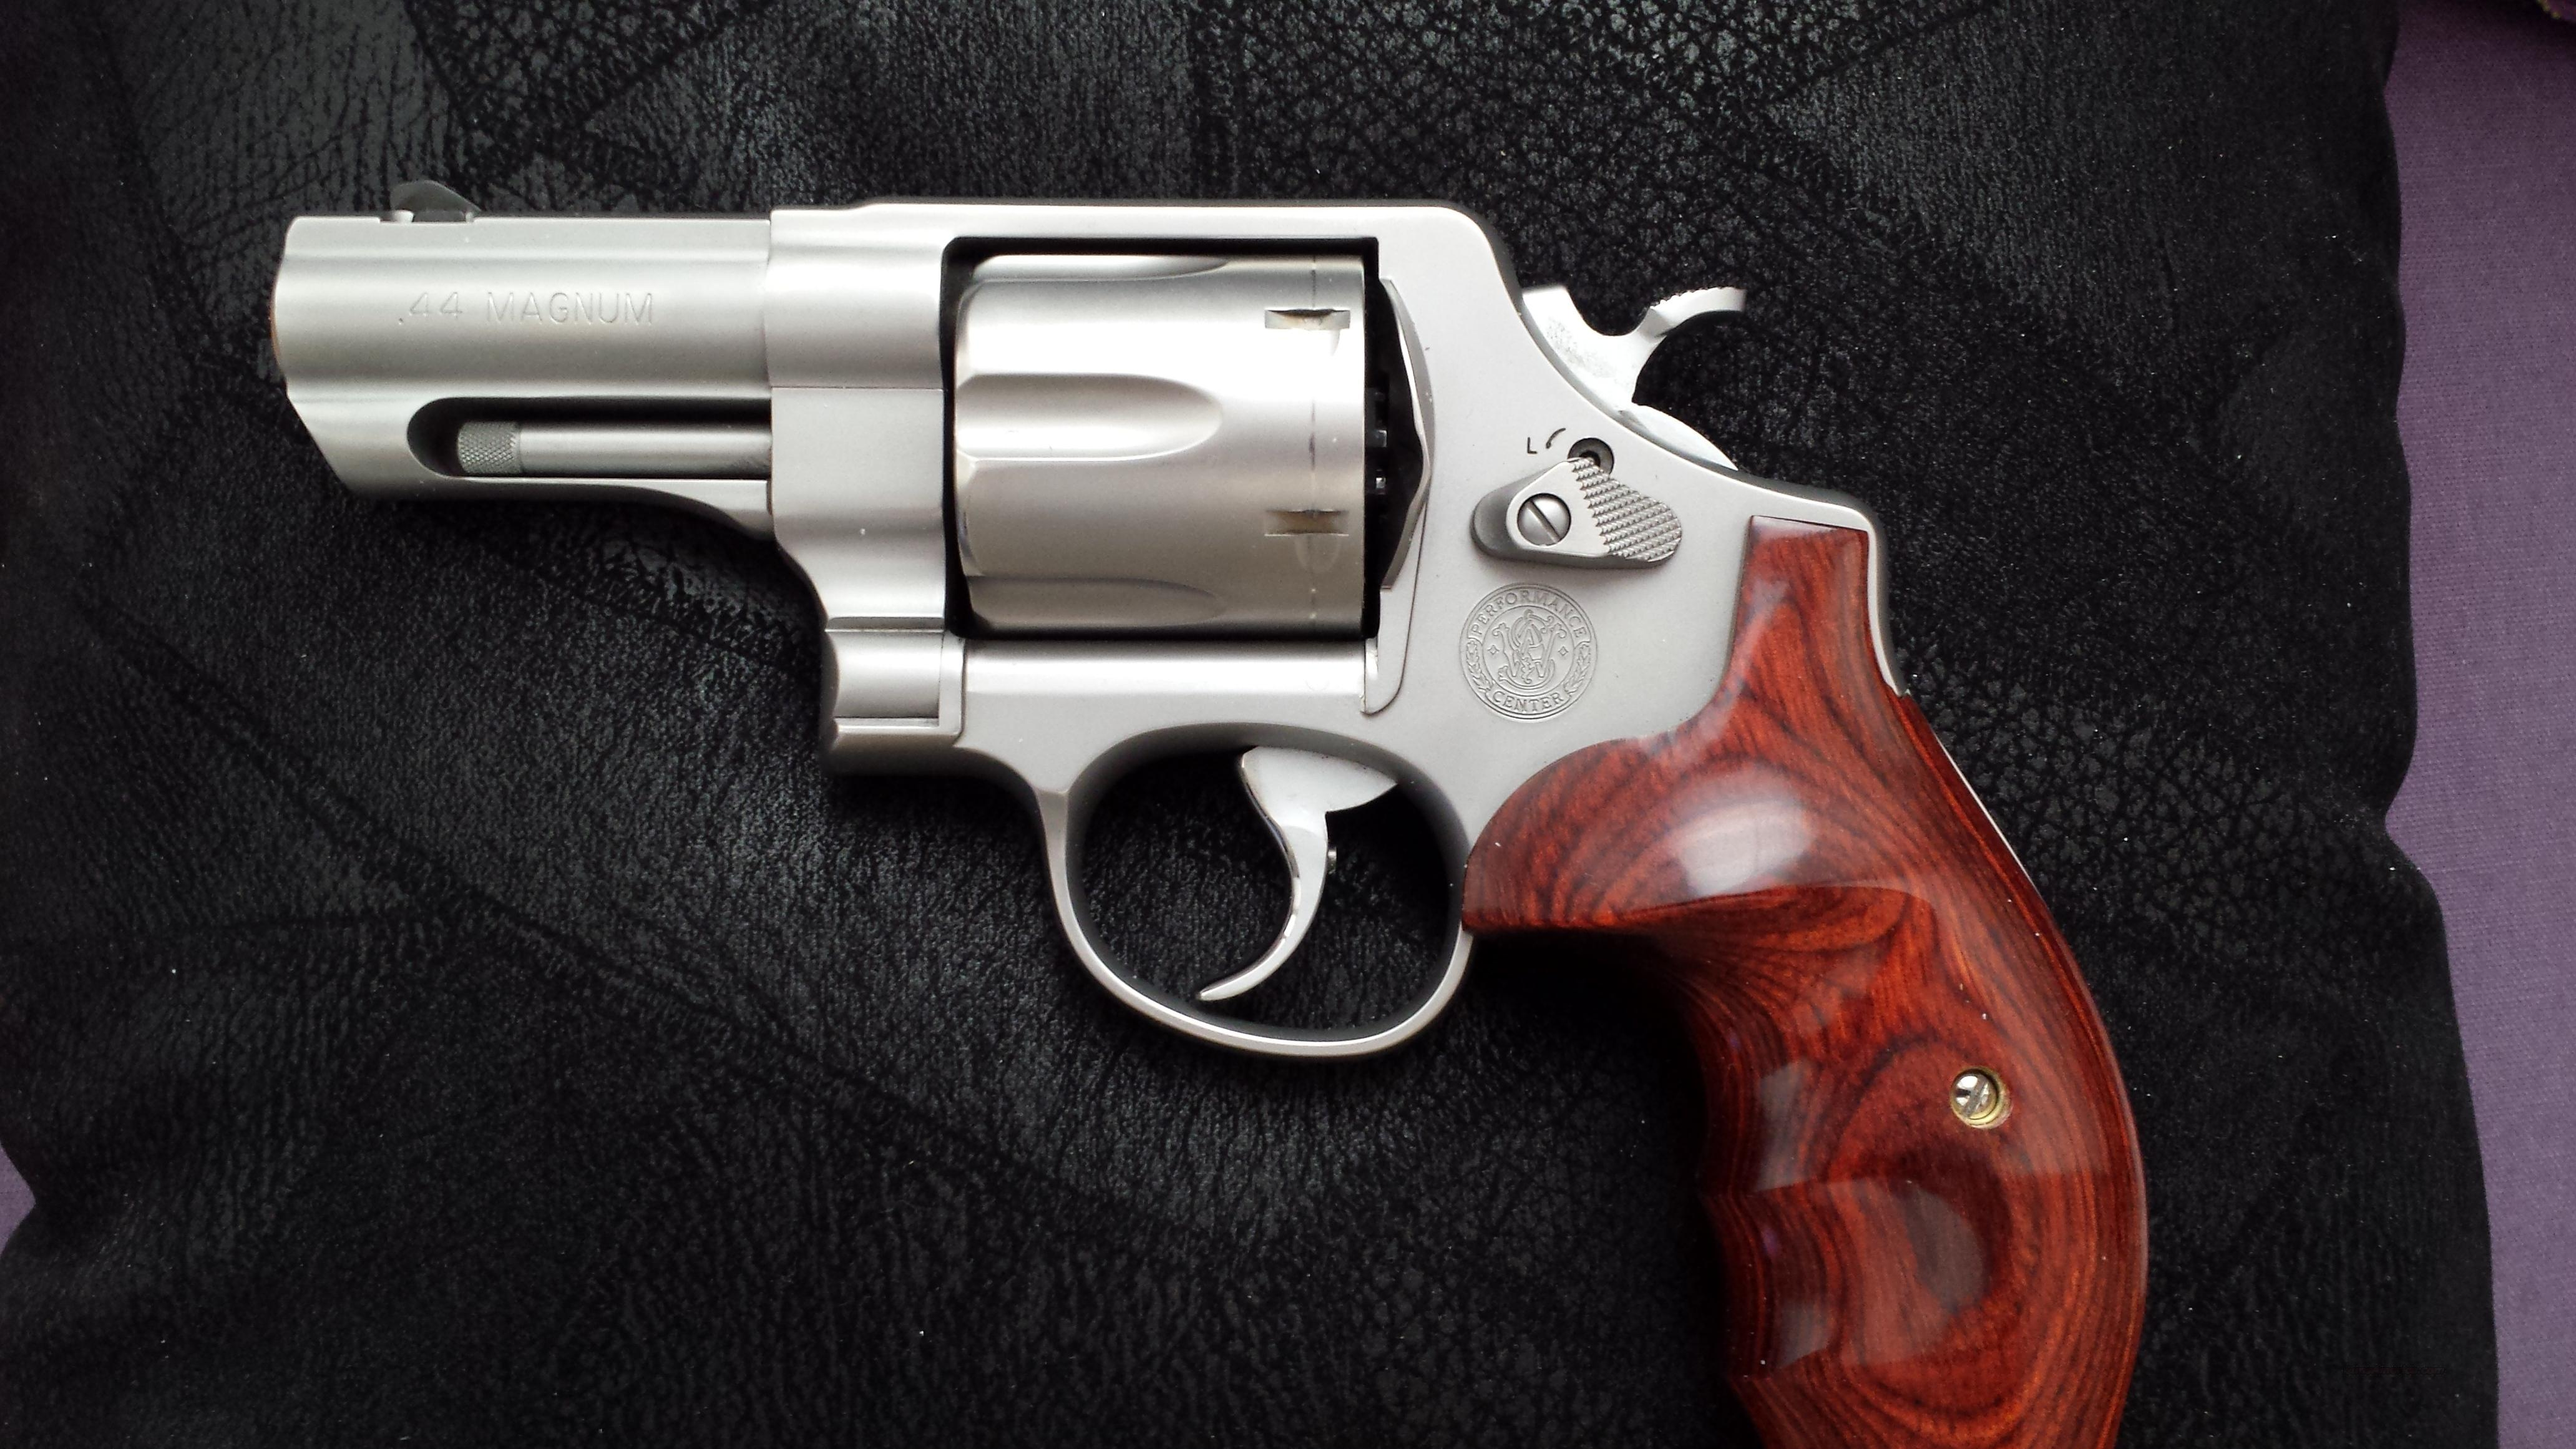 S&W Model 629-6 Carry Comp Performance Center Revolver  Guns > Pistols > Smith & Wesson Revolvers > Performance Center